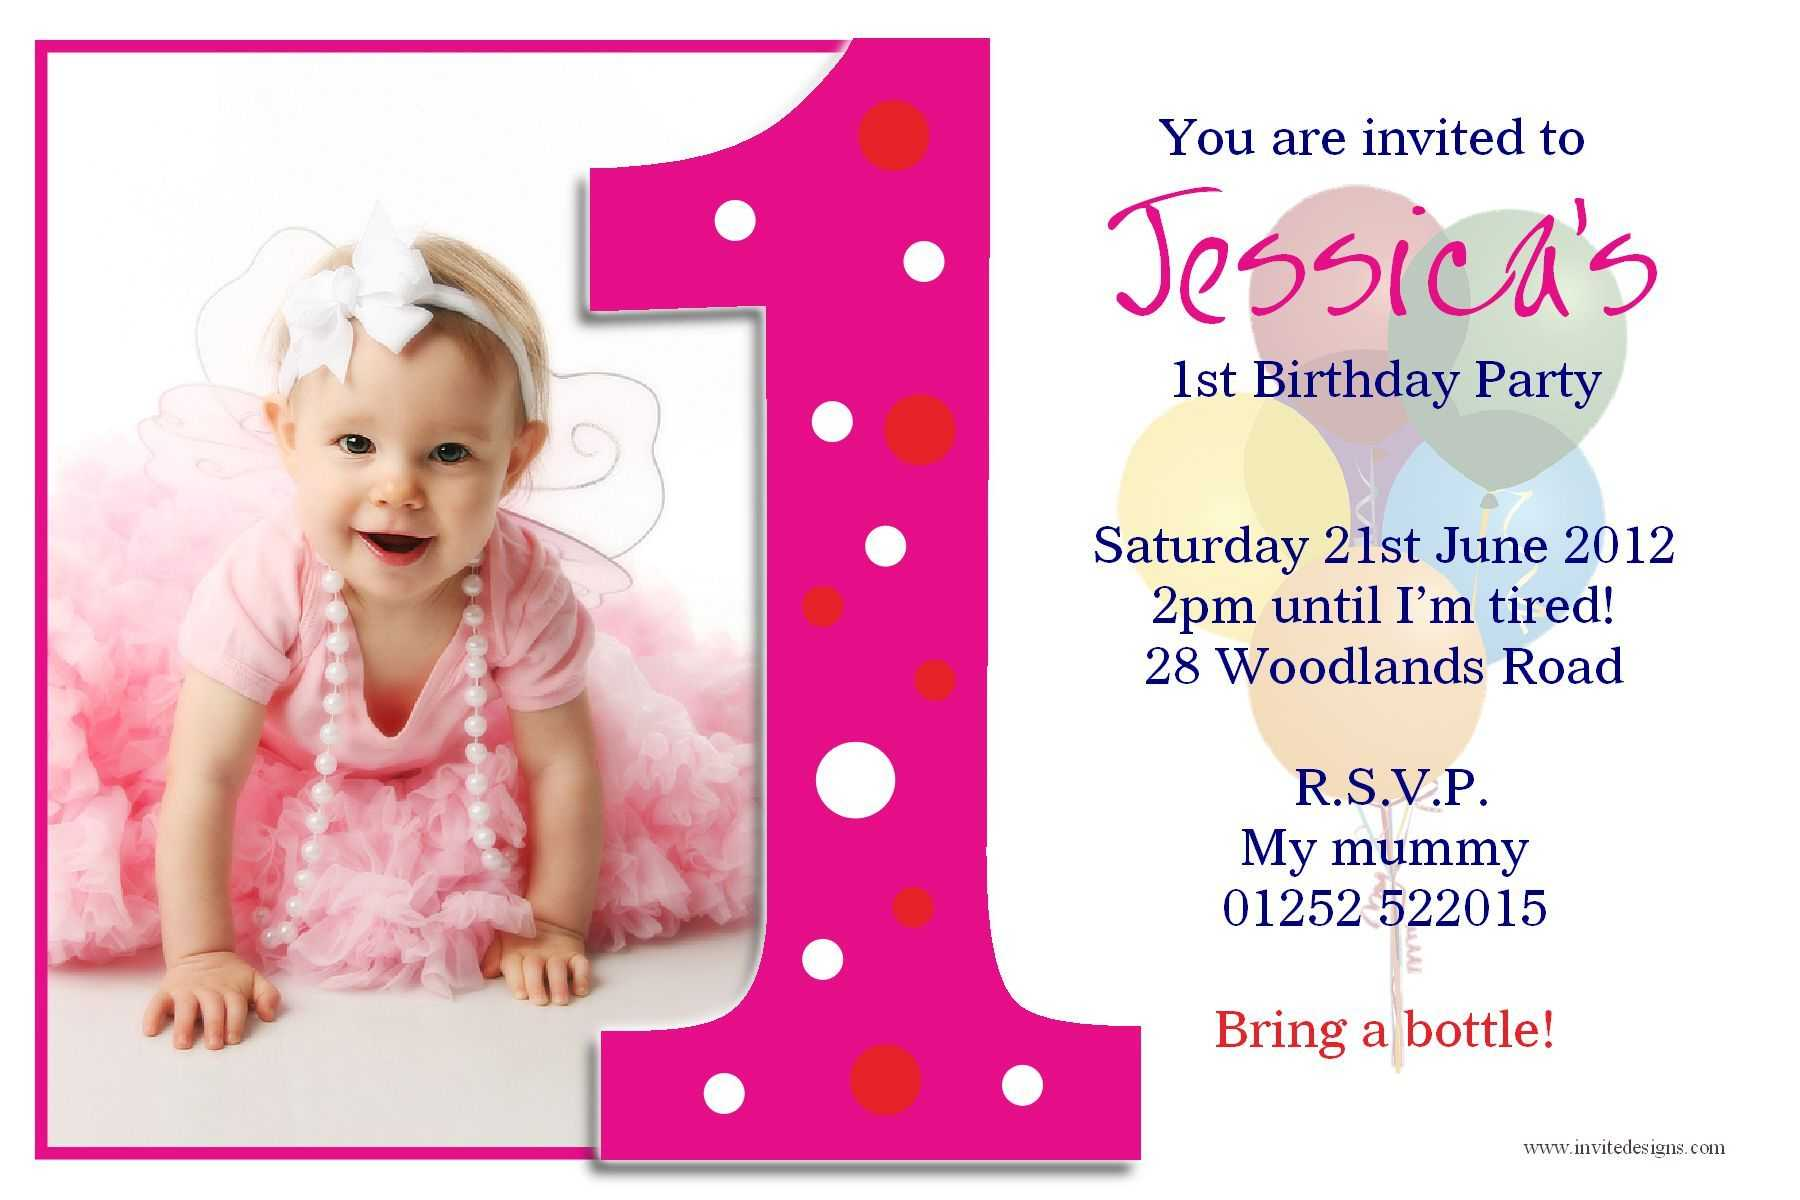 Birthday Party : First Birthday Invitations - Card With First Birthday Invitation Card Template